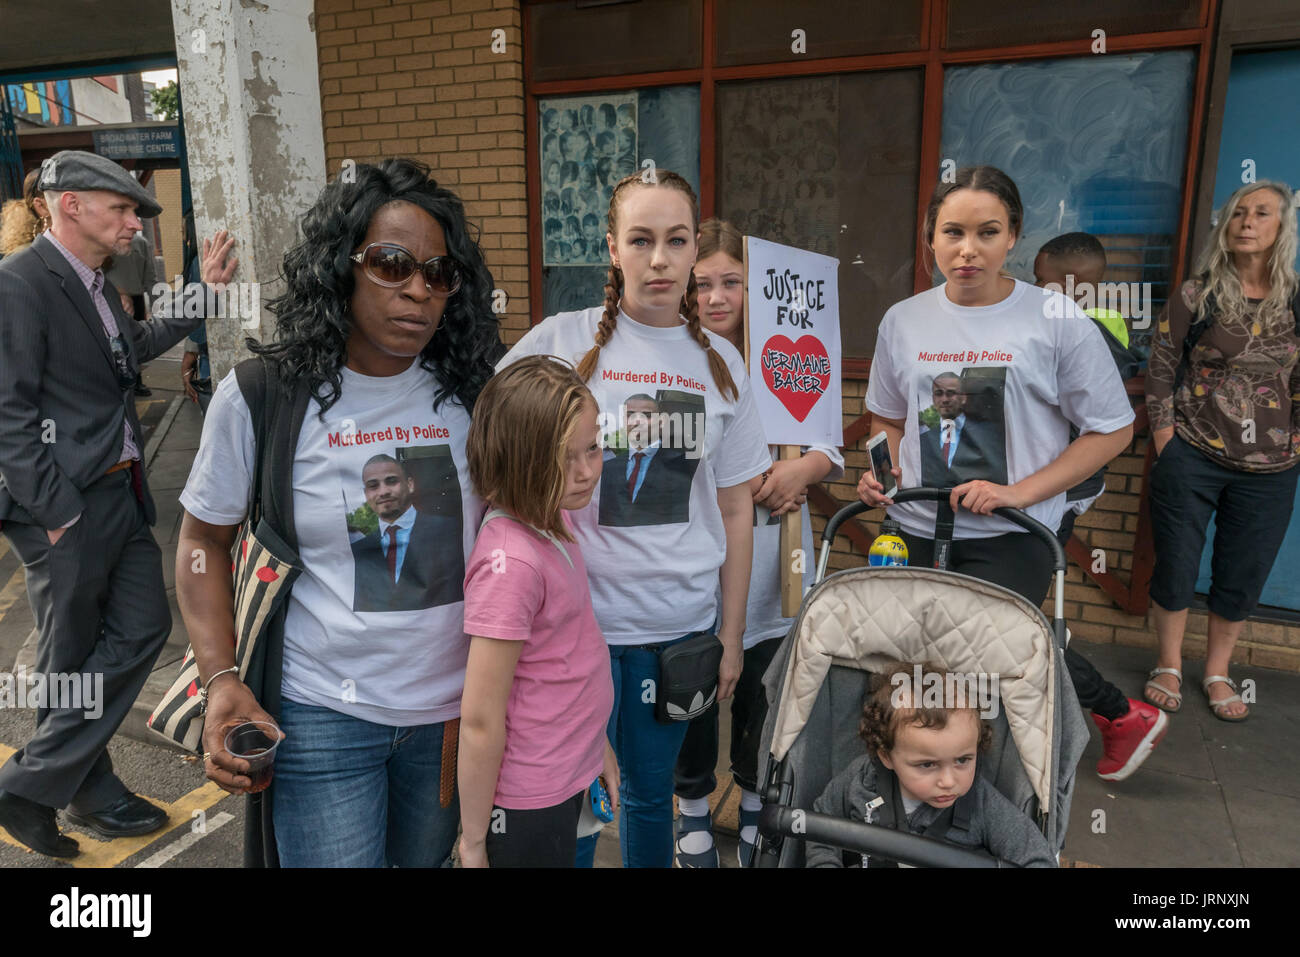 London, UK. 4th Aug, 2017. London, UK. 4th August 2017. The mother and relatives of Jermaine Baker, shot by police in 2015, at the start of the march from Broadwater Farm to a rally at Tottenham Police Station remembering the death of Mark Duggan on the sixth anniversary of his killing by police, and also the police killing of other members of the Tottenham community - Cynthia Jarrett, Joy Gardner, Roger Sylvester, Mark Duggan and Jermaine Baker and the recent murders of Rashan Charles, Darren Cumberbatch and Edson Da Costa. Led by Stafford Scott, there was poetry, a minute of silence and s - Stock Image